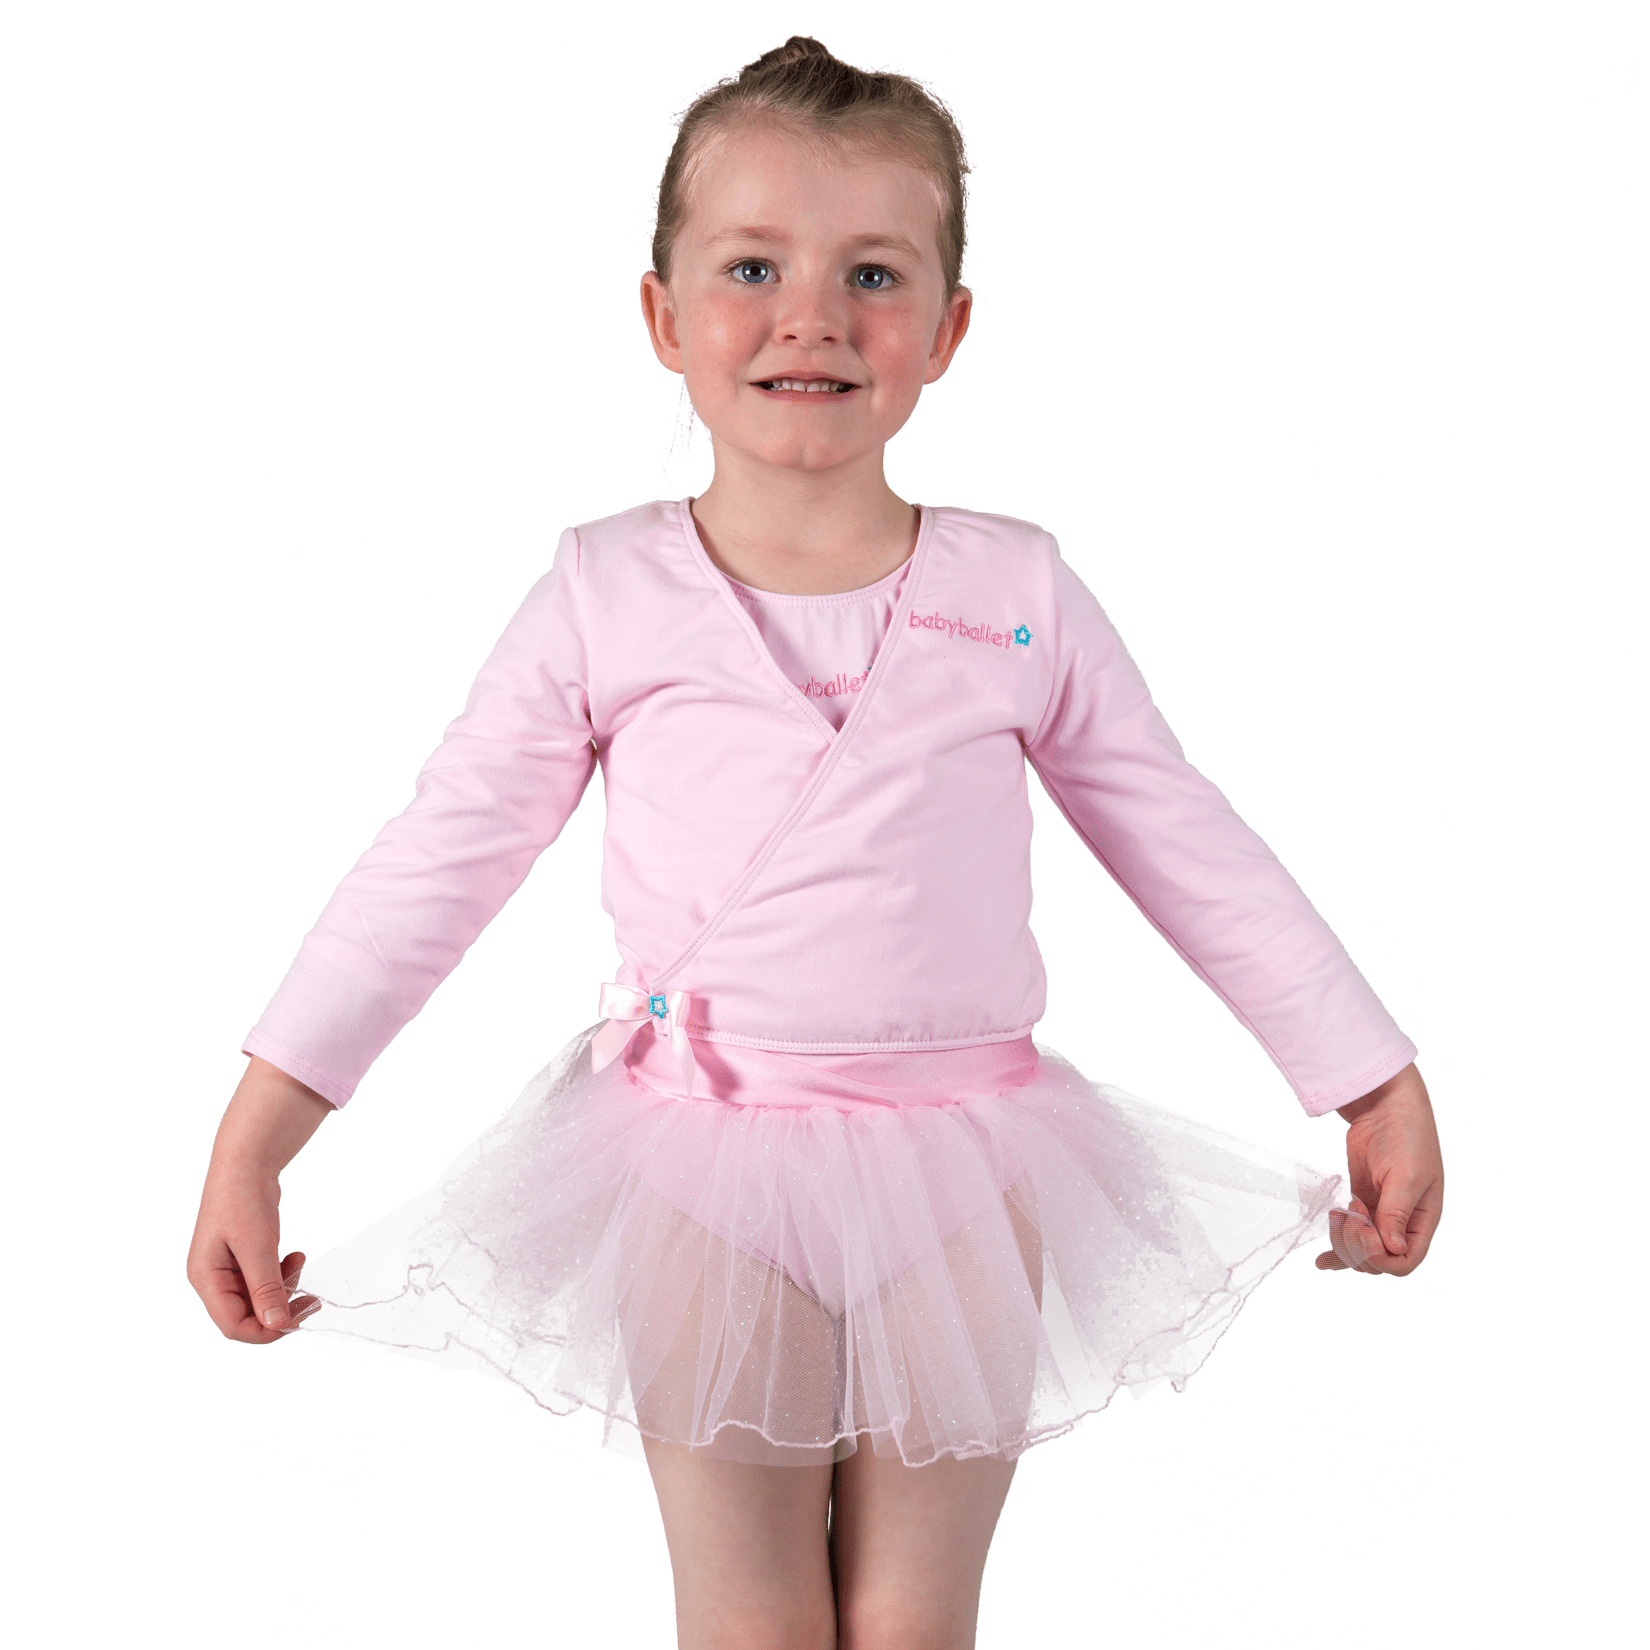 ade2aa032 Dolly Cardigan cotton ballet cardigan for dance class